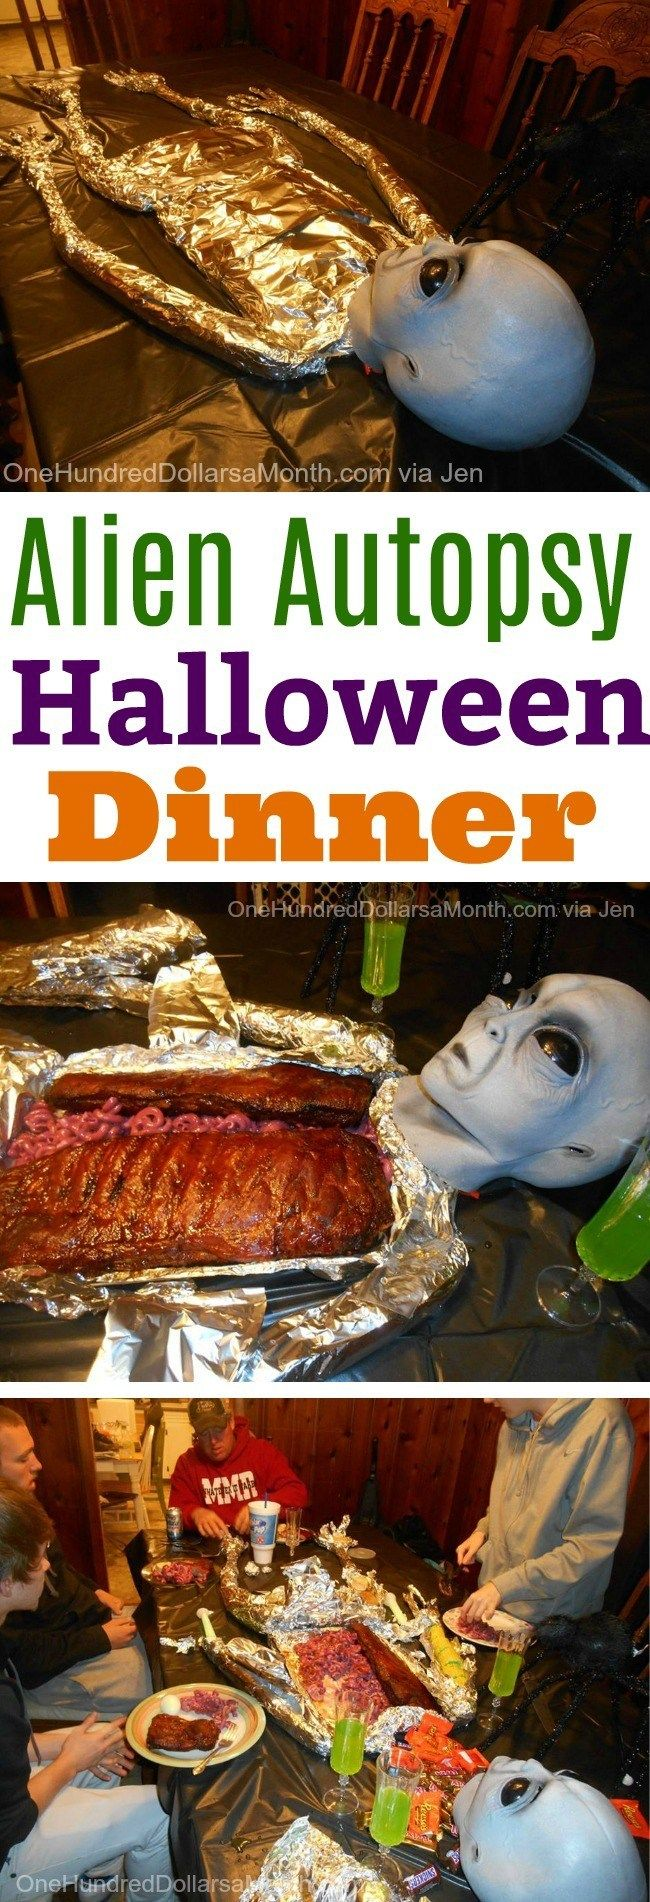 Jen's Alien Autopsy Halloween Dinner - One Hundred Dollars a Month